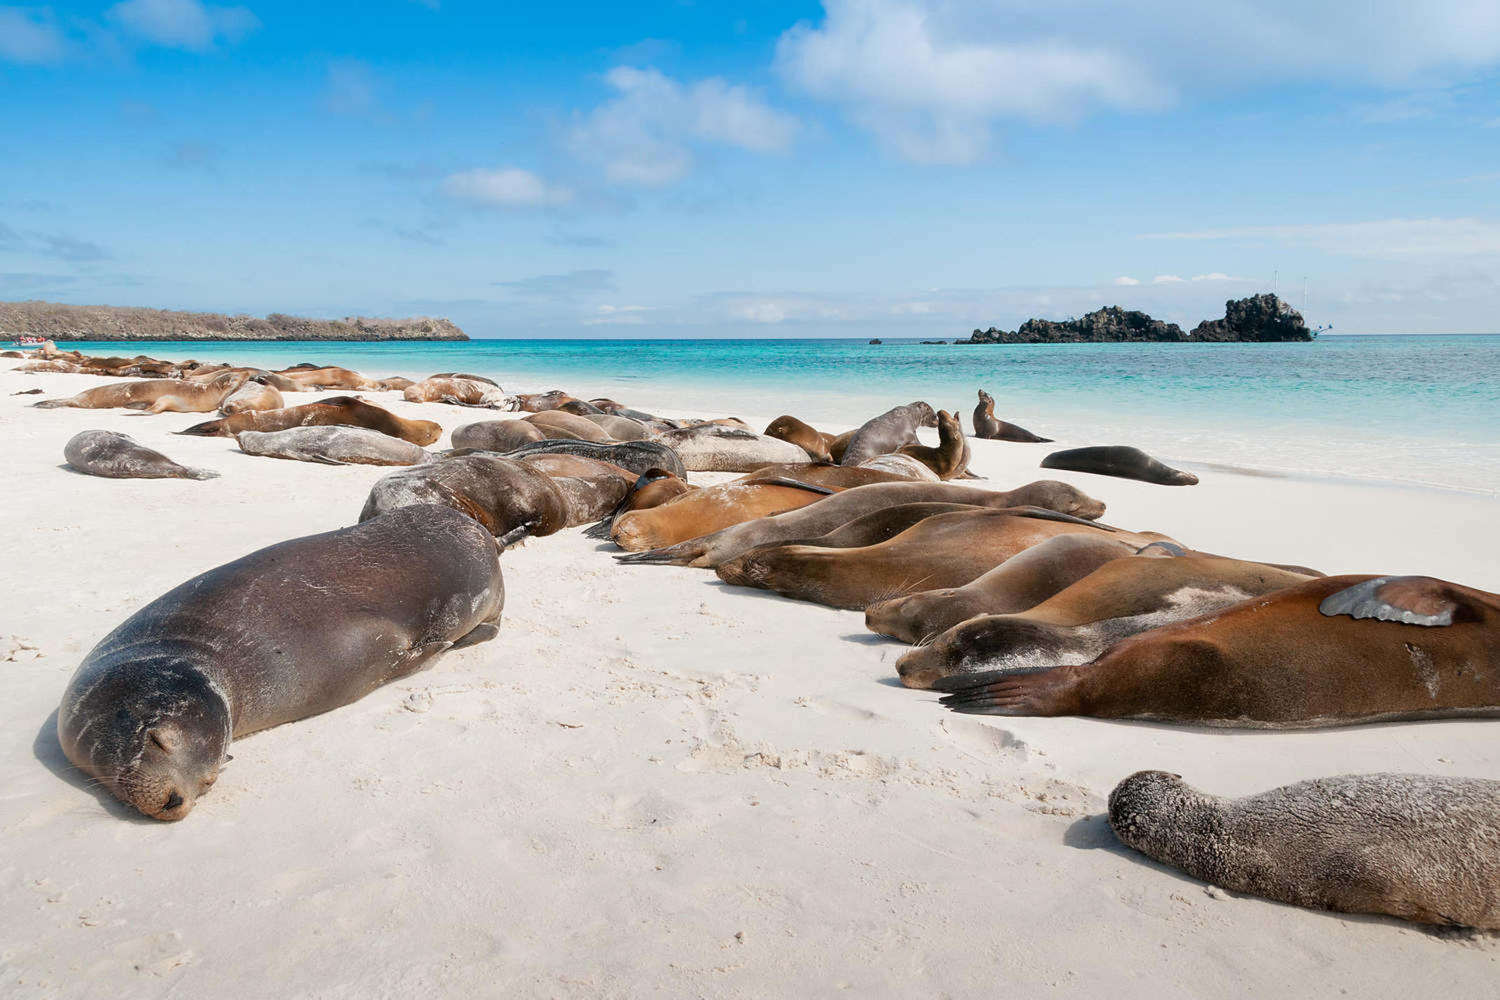 Espanola island with many sea lions sleeping on a beach